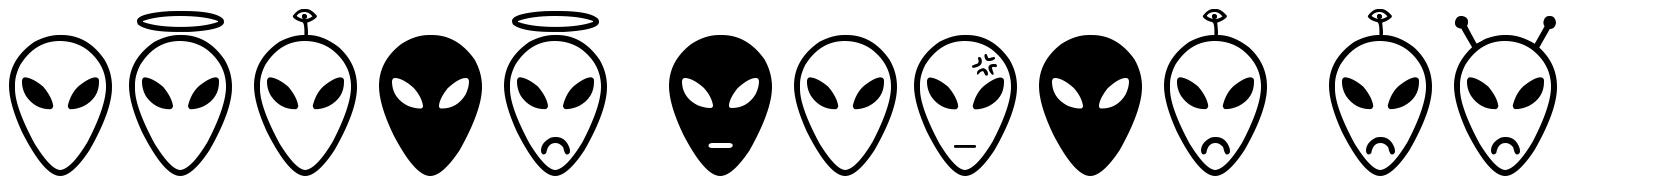 Alien Faces ST